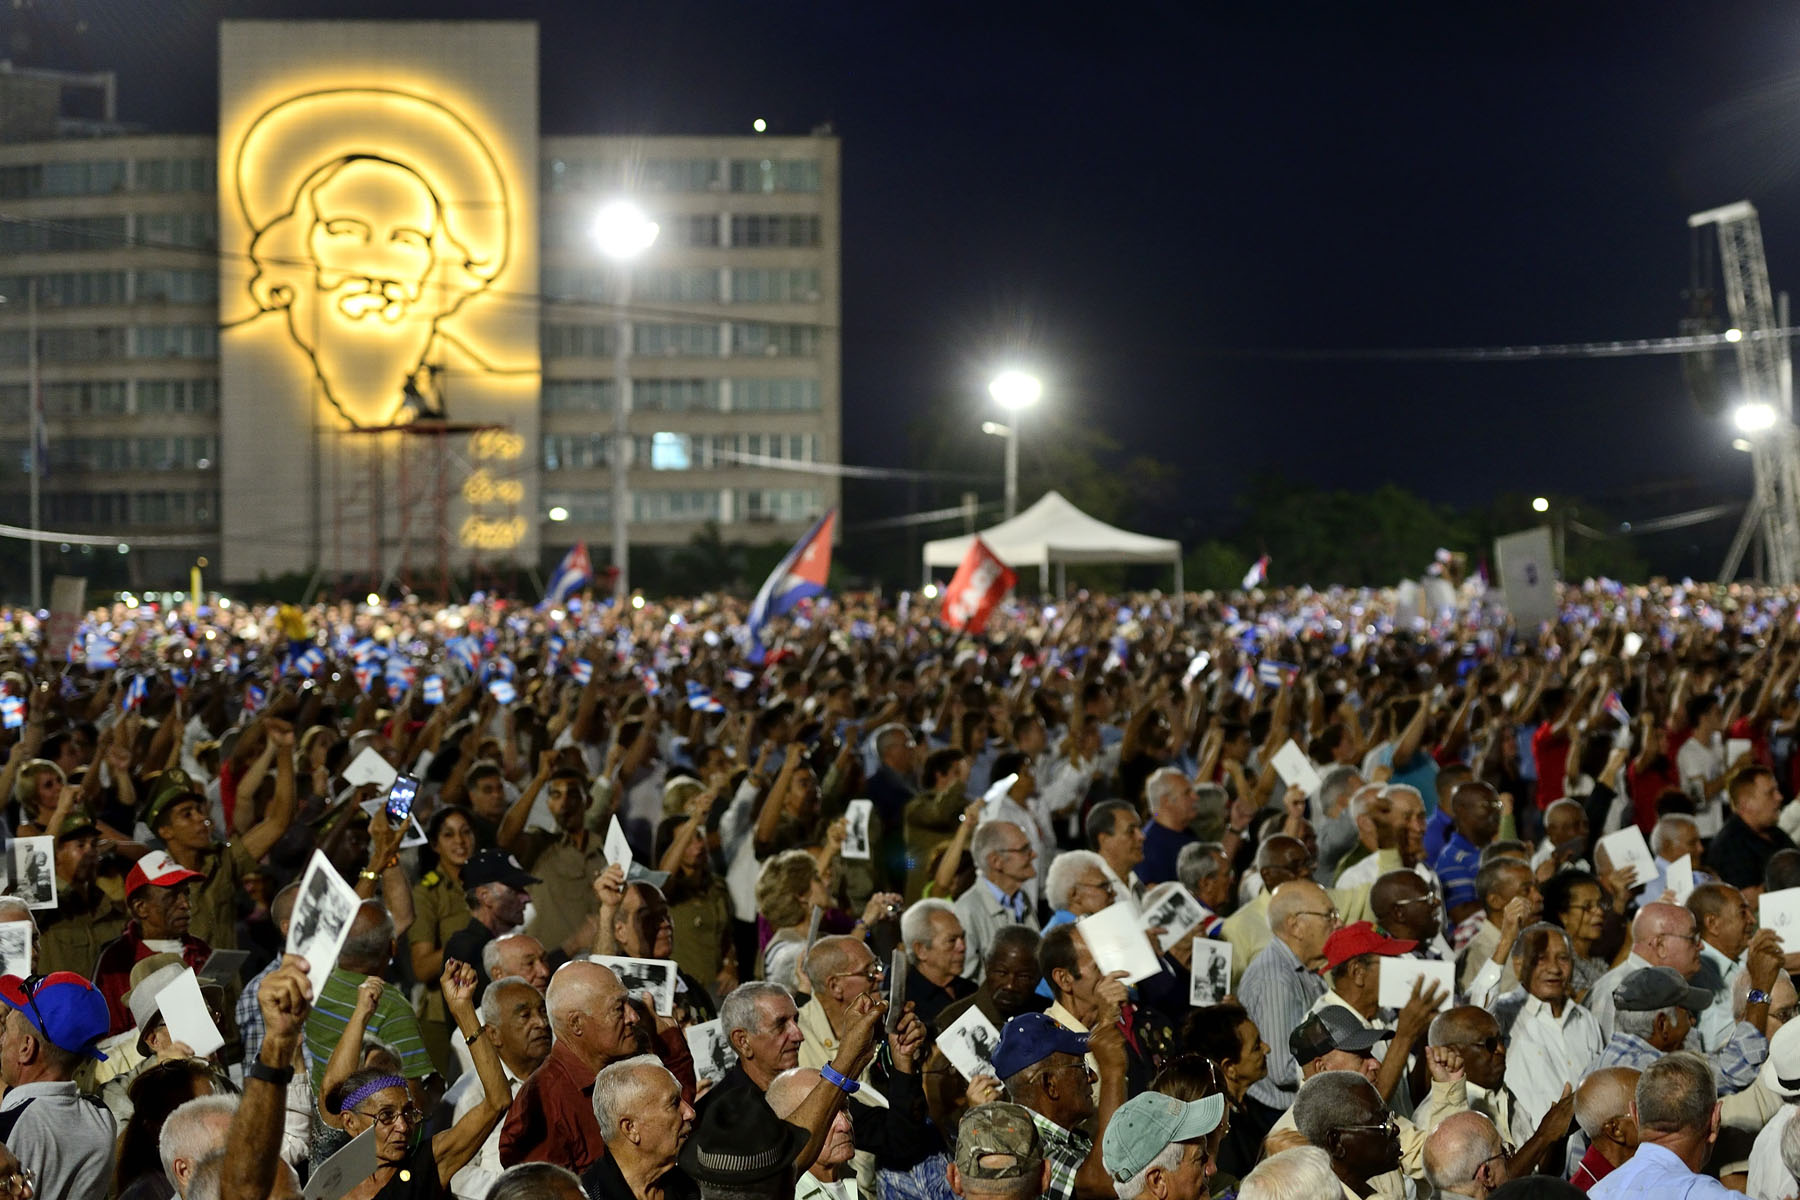 The Plaza de la Revolución is notable as being the location where many political rallies are held. Fidel Castro had on several occasions used this site to address Cubans.